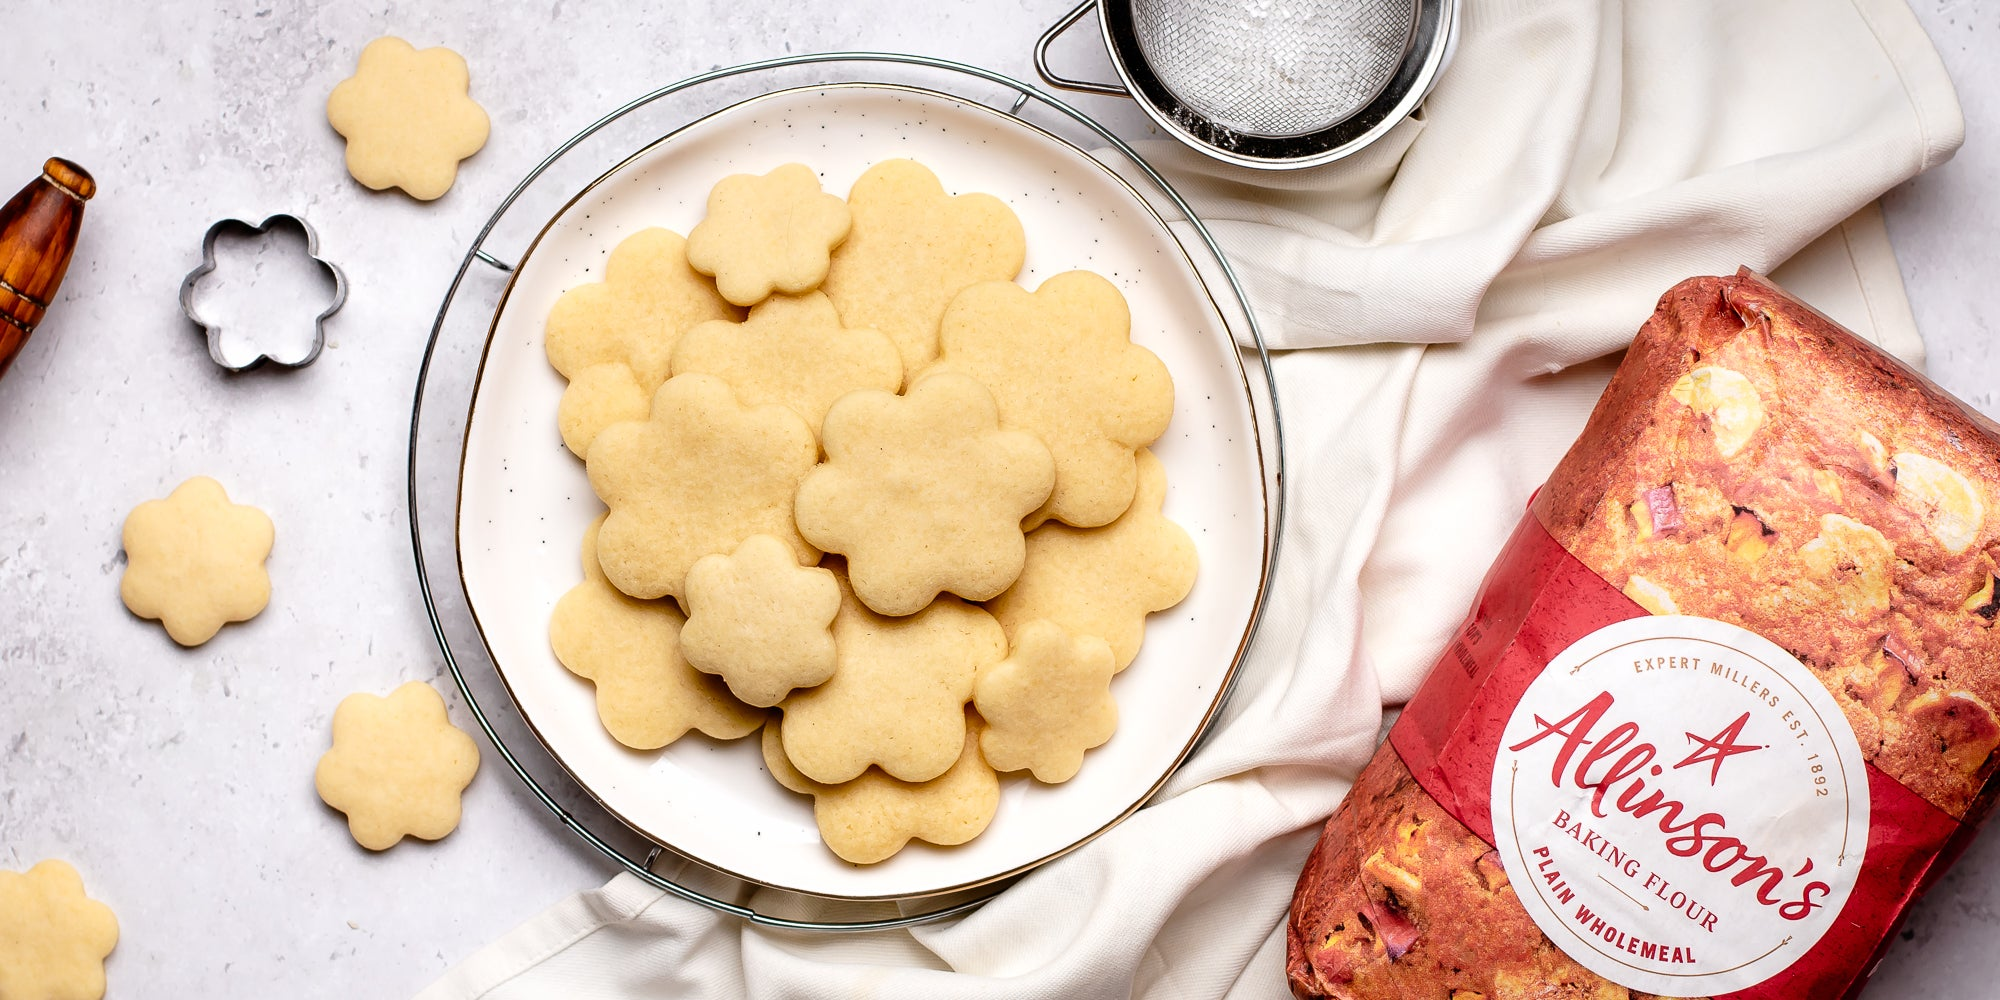 A plate of biscuits baked using the Basic Biscuit Dough recipe, next to a bag of Allinson's flour and biscuit cutters